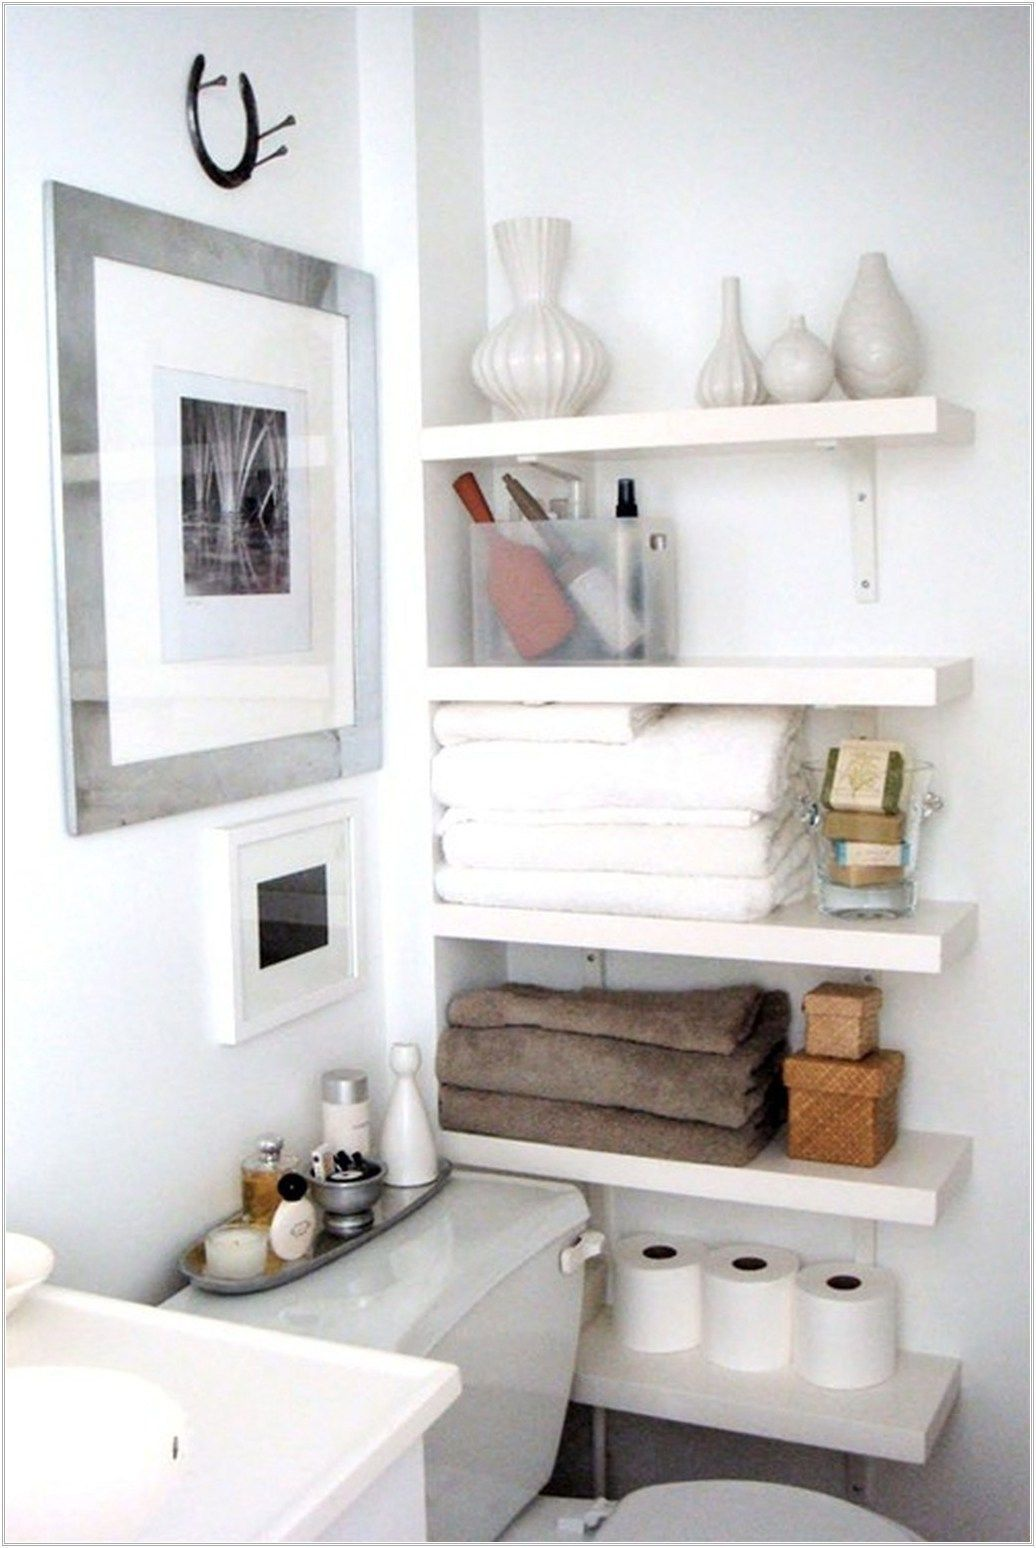 bathroom storage ideas for small spaces, bathroom storage ideas diy ...